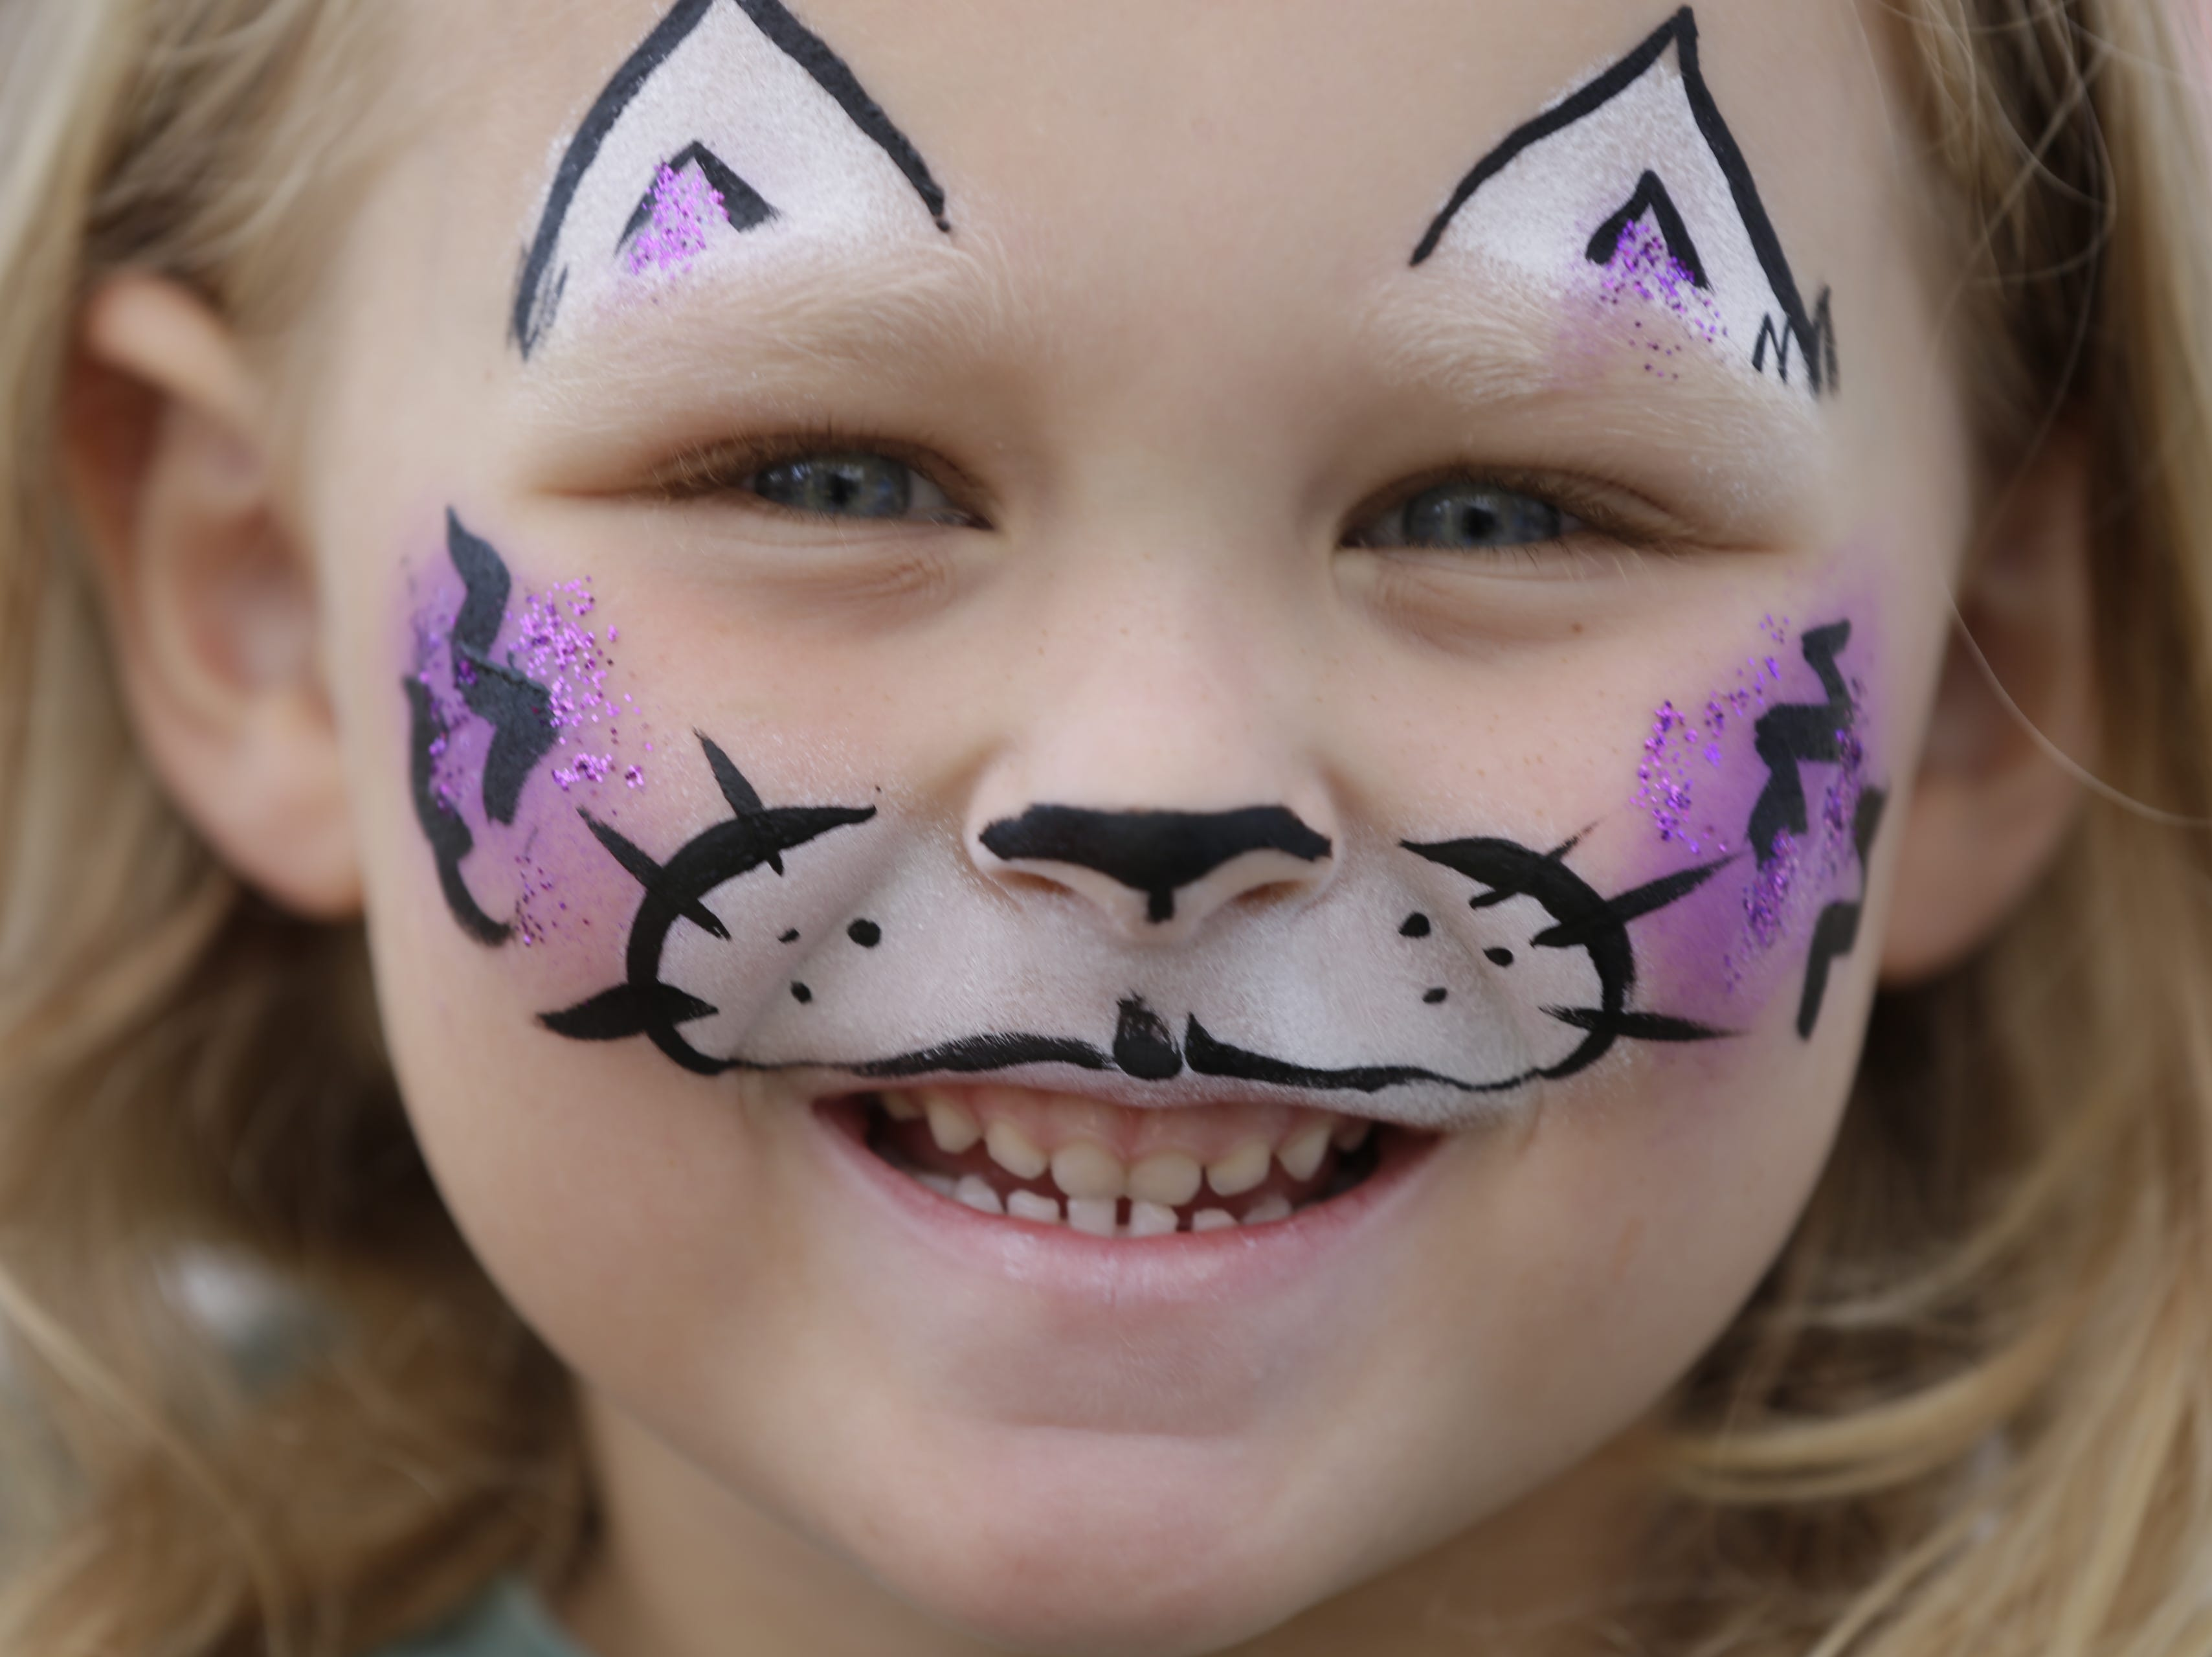 Ellie Kauer, 5, shows off her freshly painted cat face at Hub City Days in downtown Marshfield Saturday, July 28, 2018.